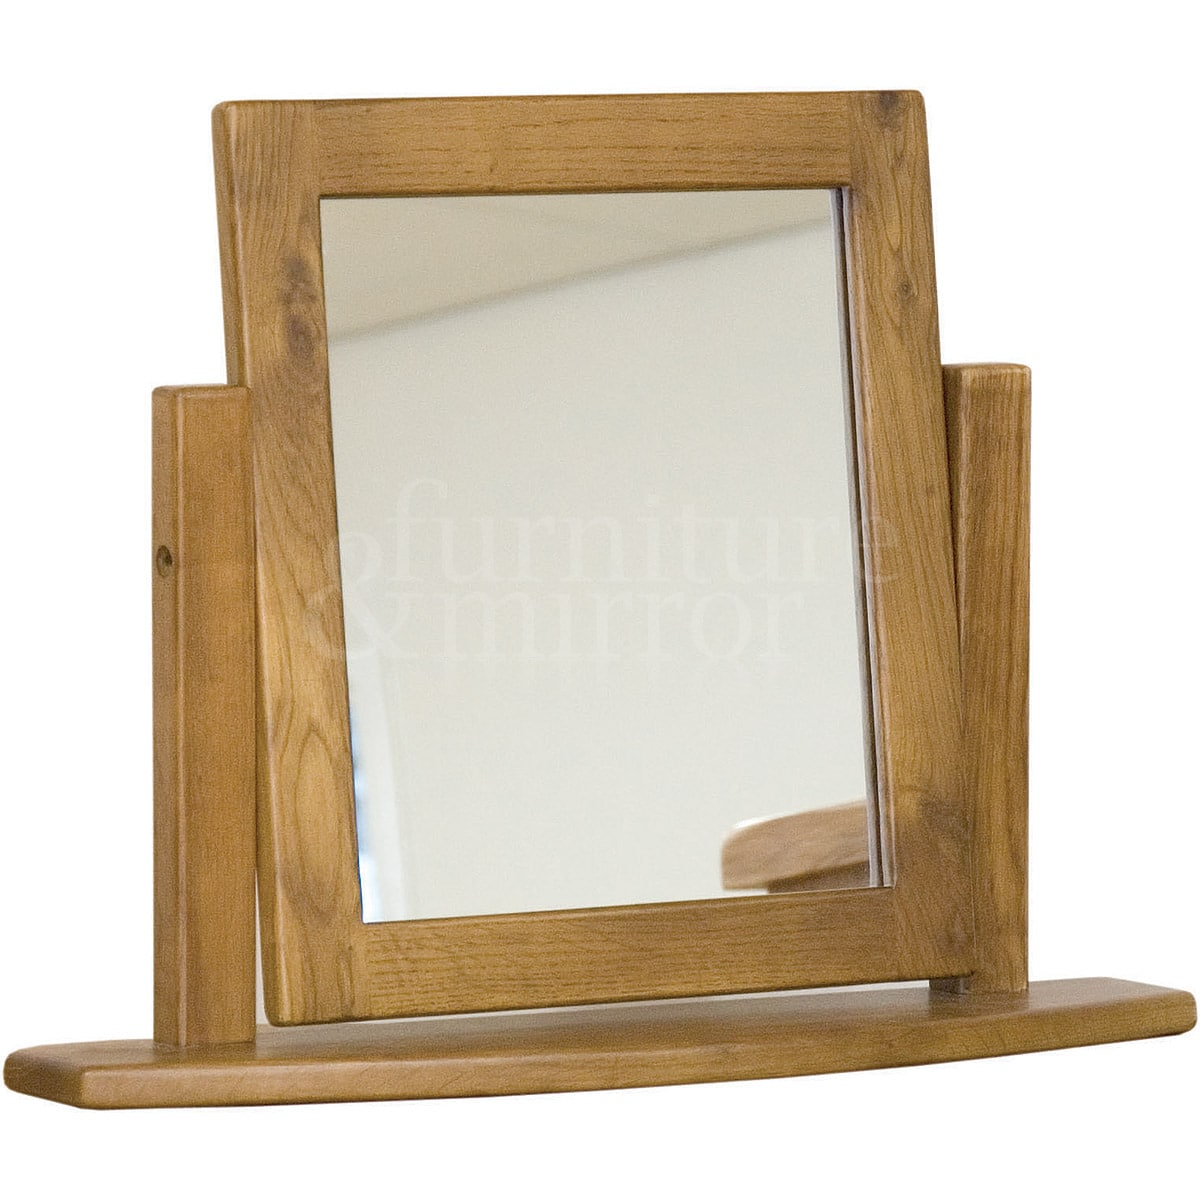 Rustic oak dressing table mirror furniture and mirror for Rustic mirror